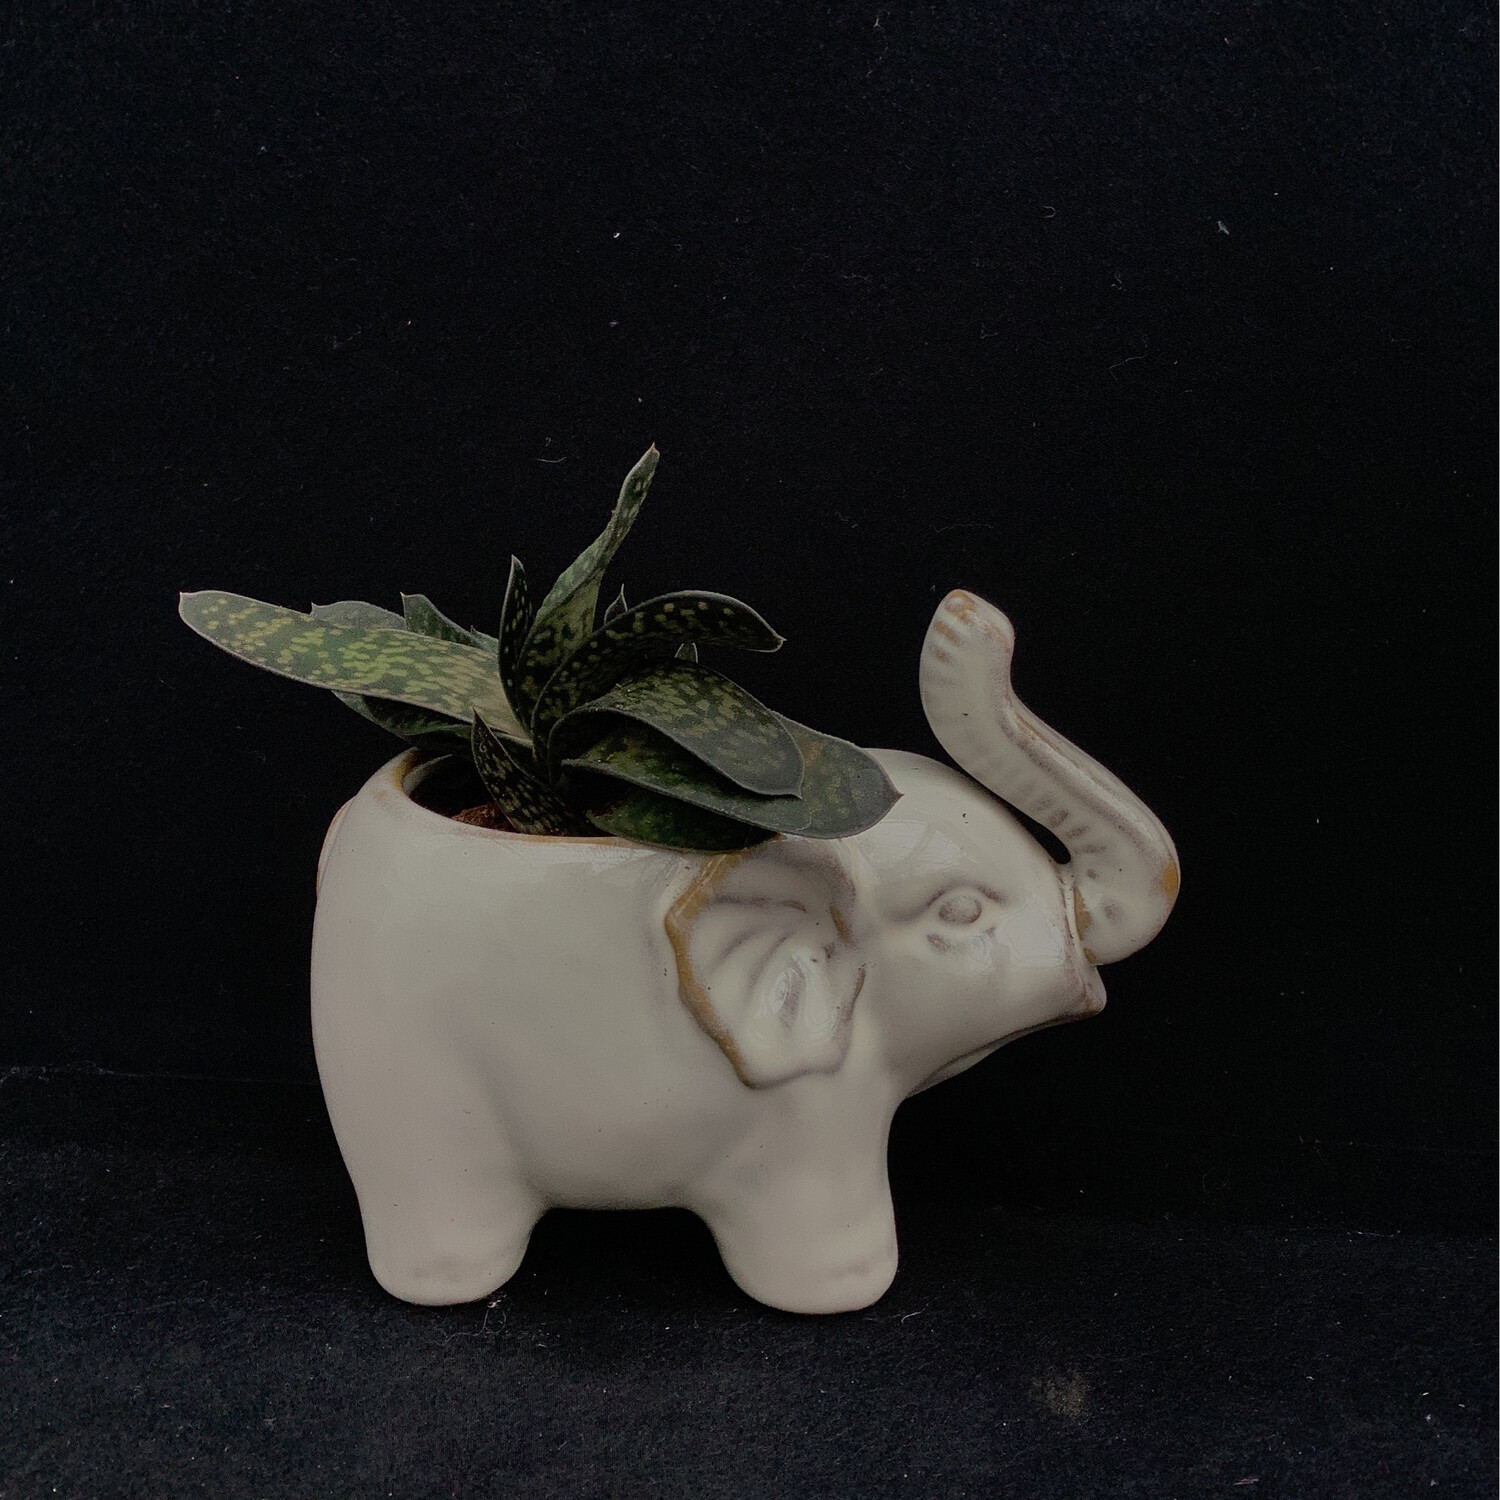 Small Succulent In Elephant